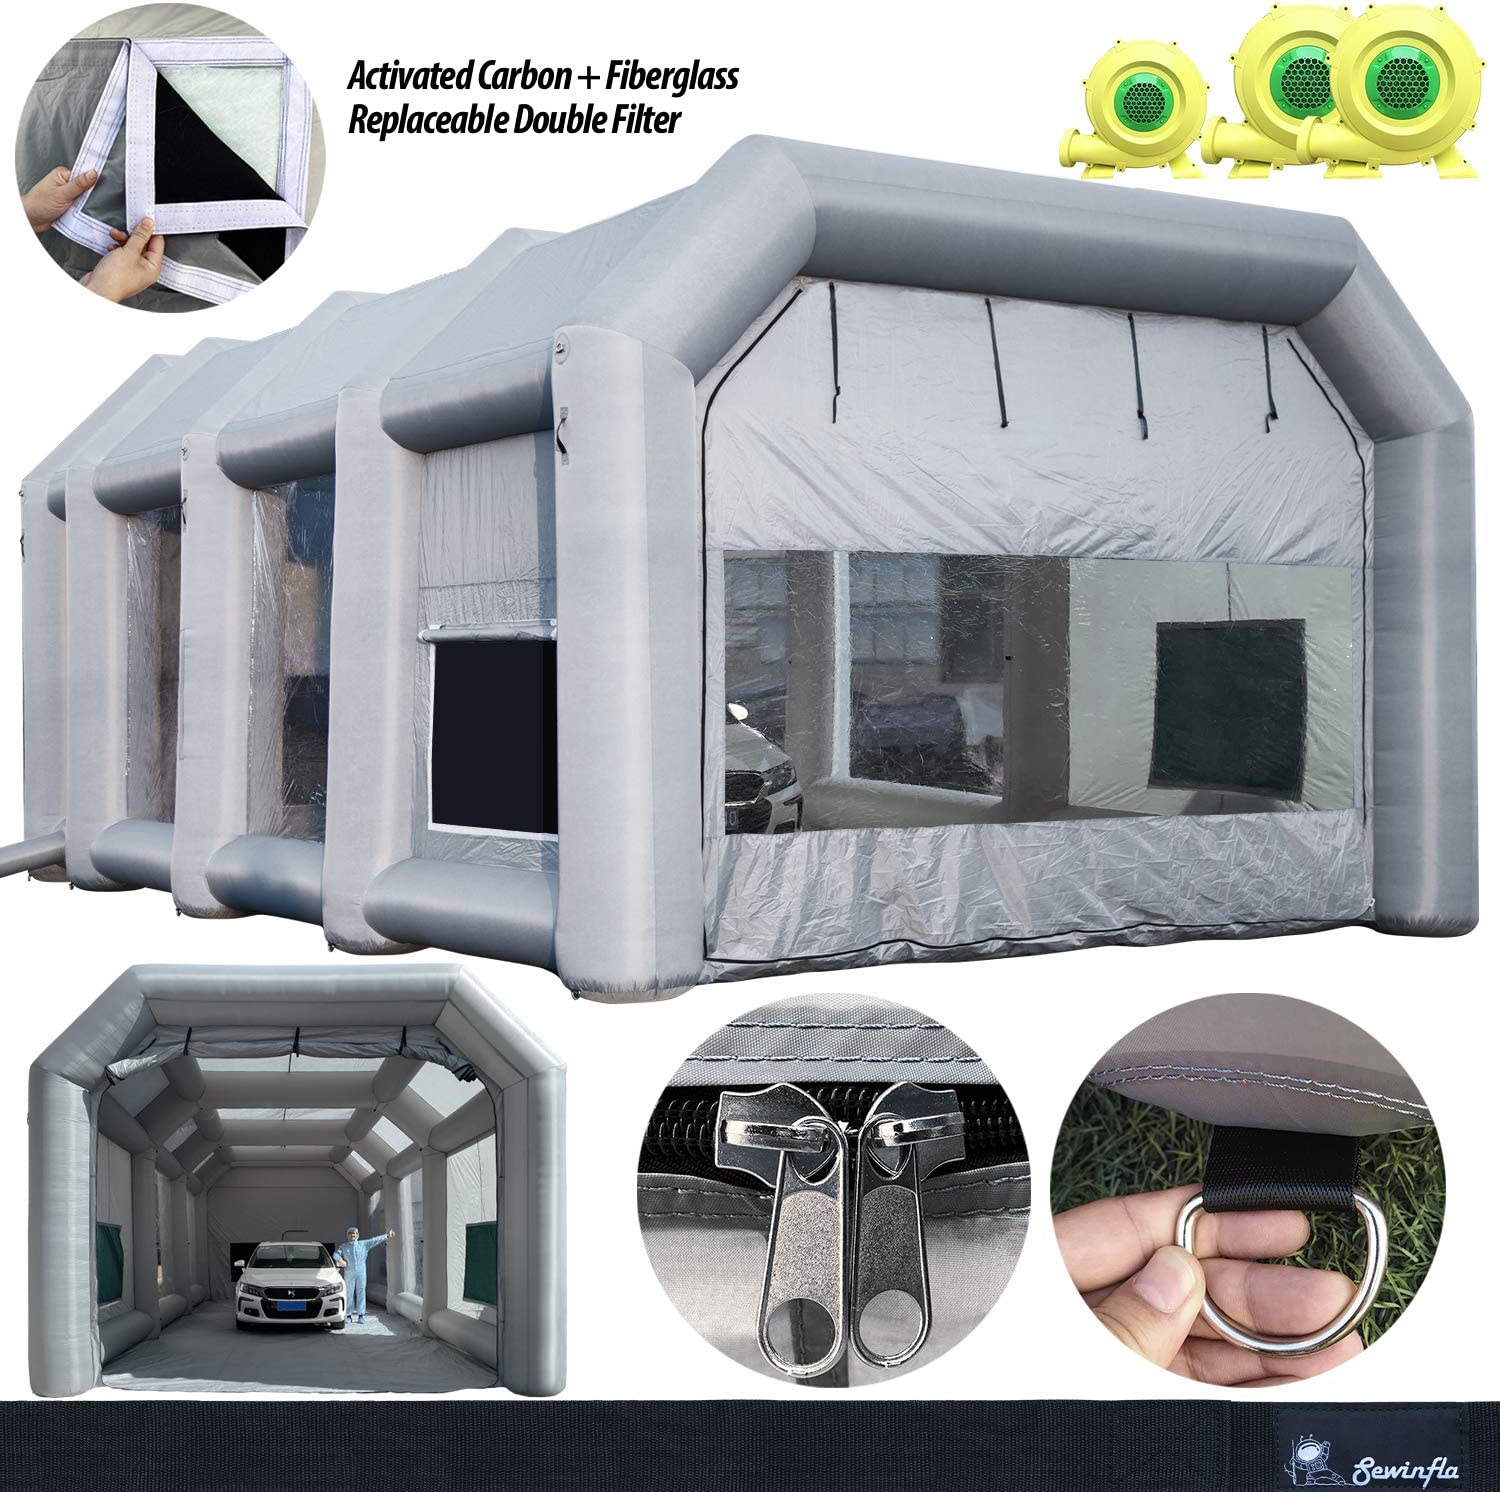 Spray Booth Replacement Filters Inflatable Paint Booth SEWINFLA Portable Car Painting Tent with Two Blowers Upgrade Air Filtration System Environment Friendly More Durable 33x16x11Ft